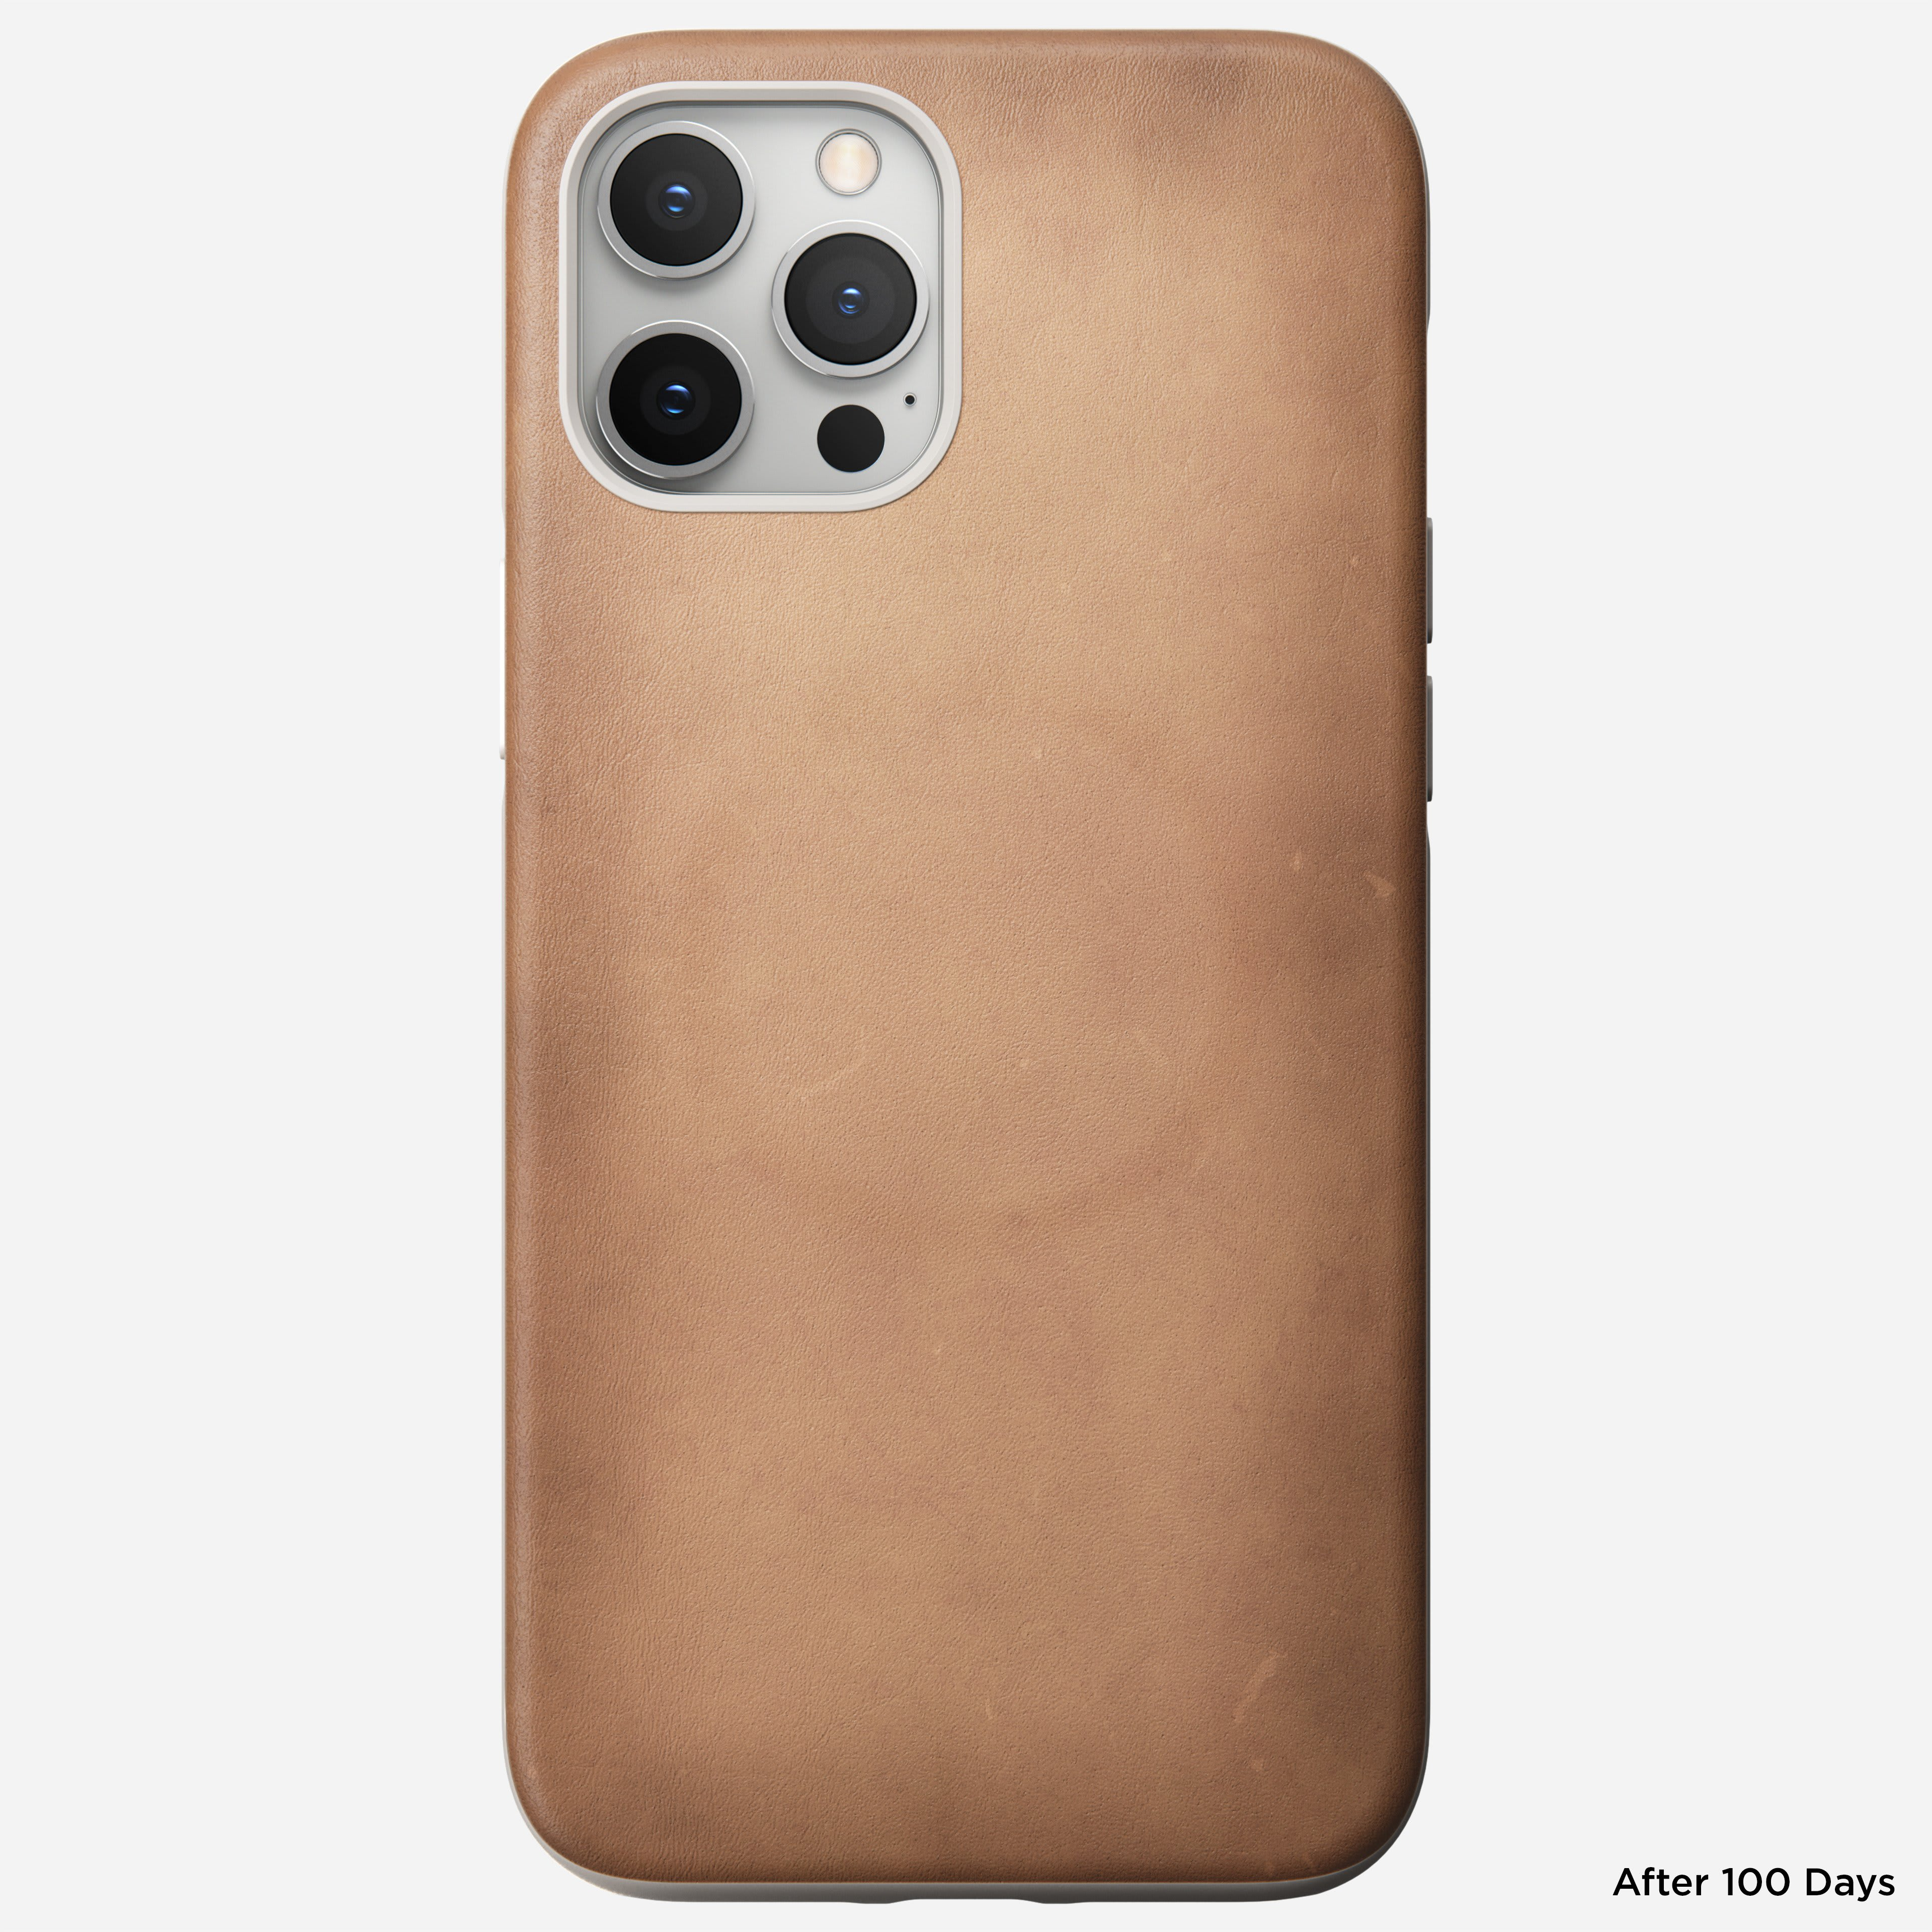 Rugged case magsafe horween leather natural iphone 12 pro max